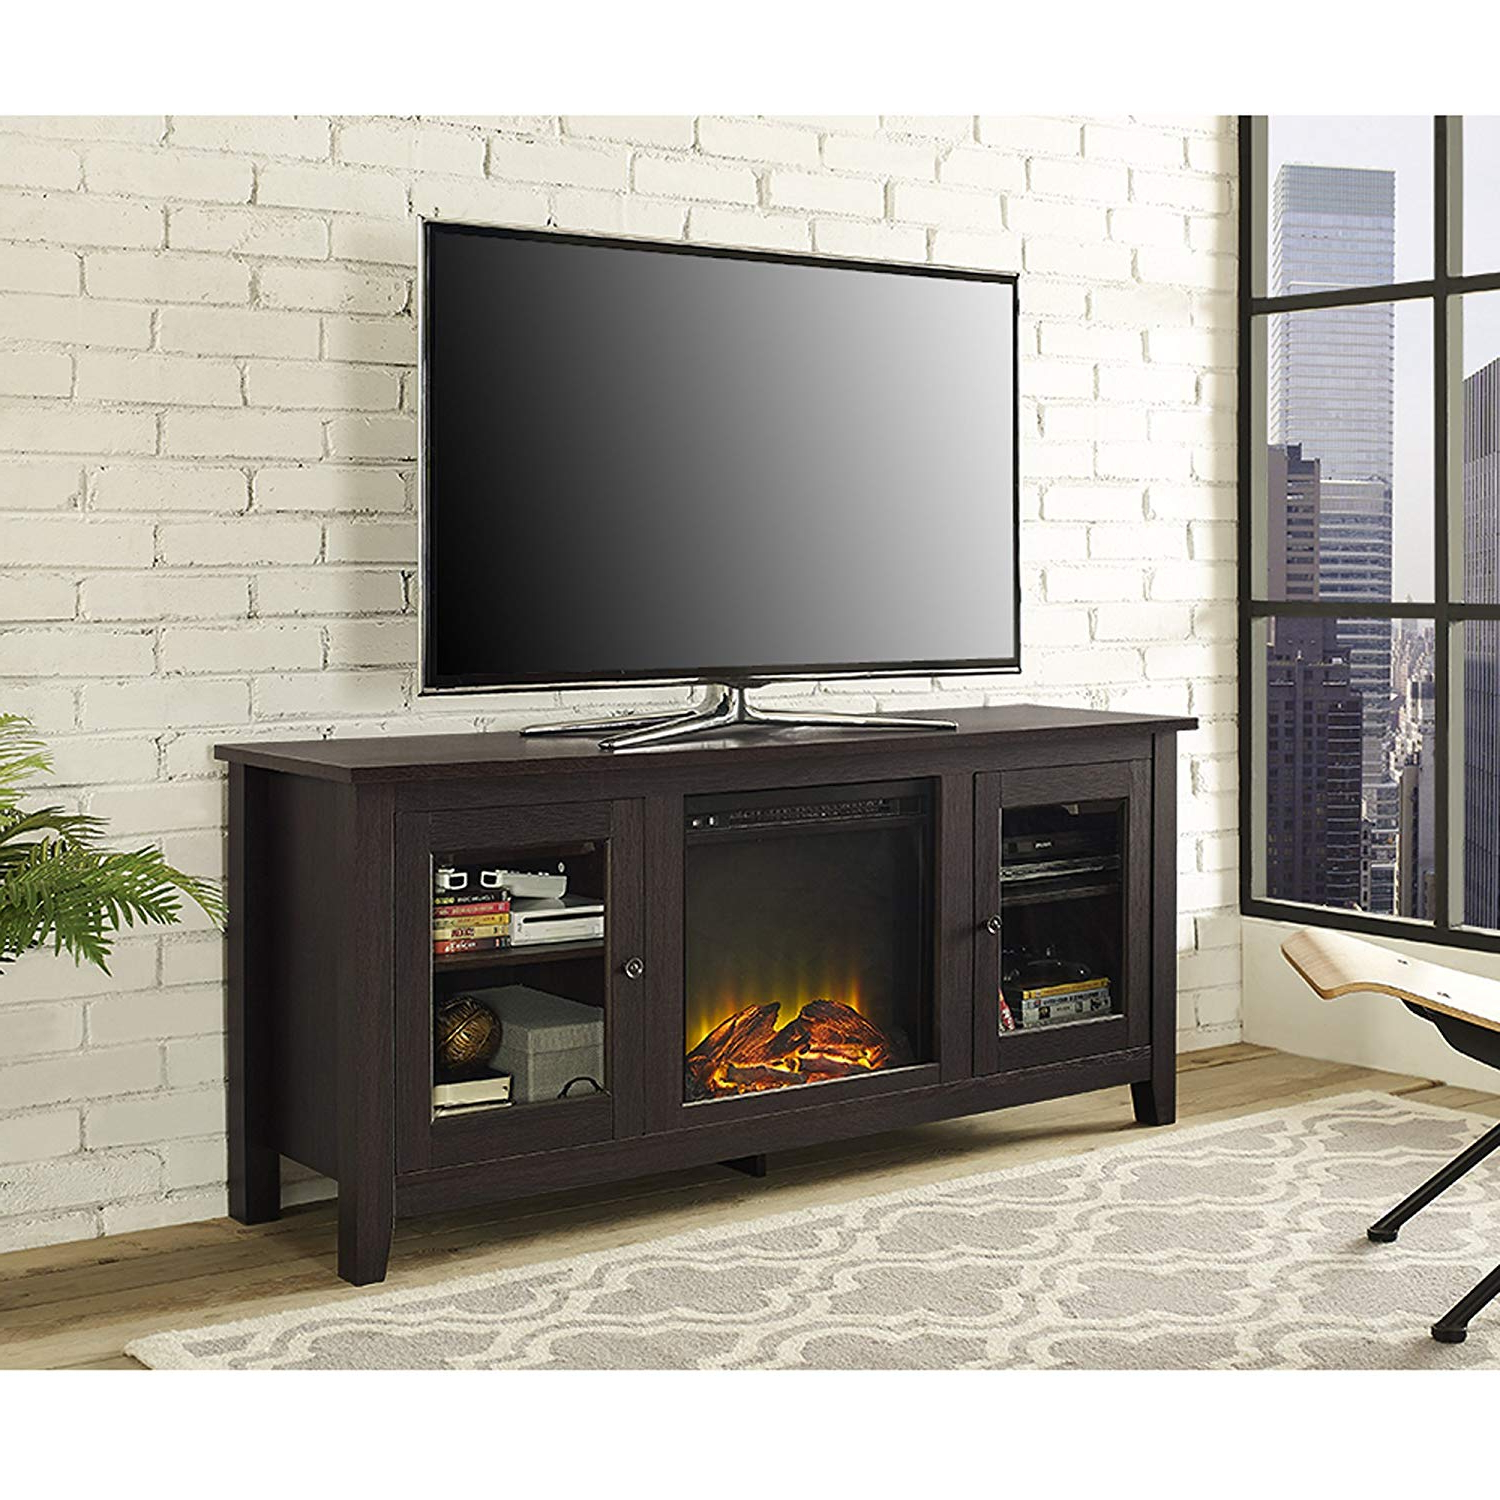 "Well Known Amazon: We Furniture 58"" Wood Fireplace Tv Stand Console Regarding Kilian Grey 60 Inch Tv Stands (View 19 of 20)"